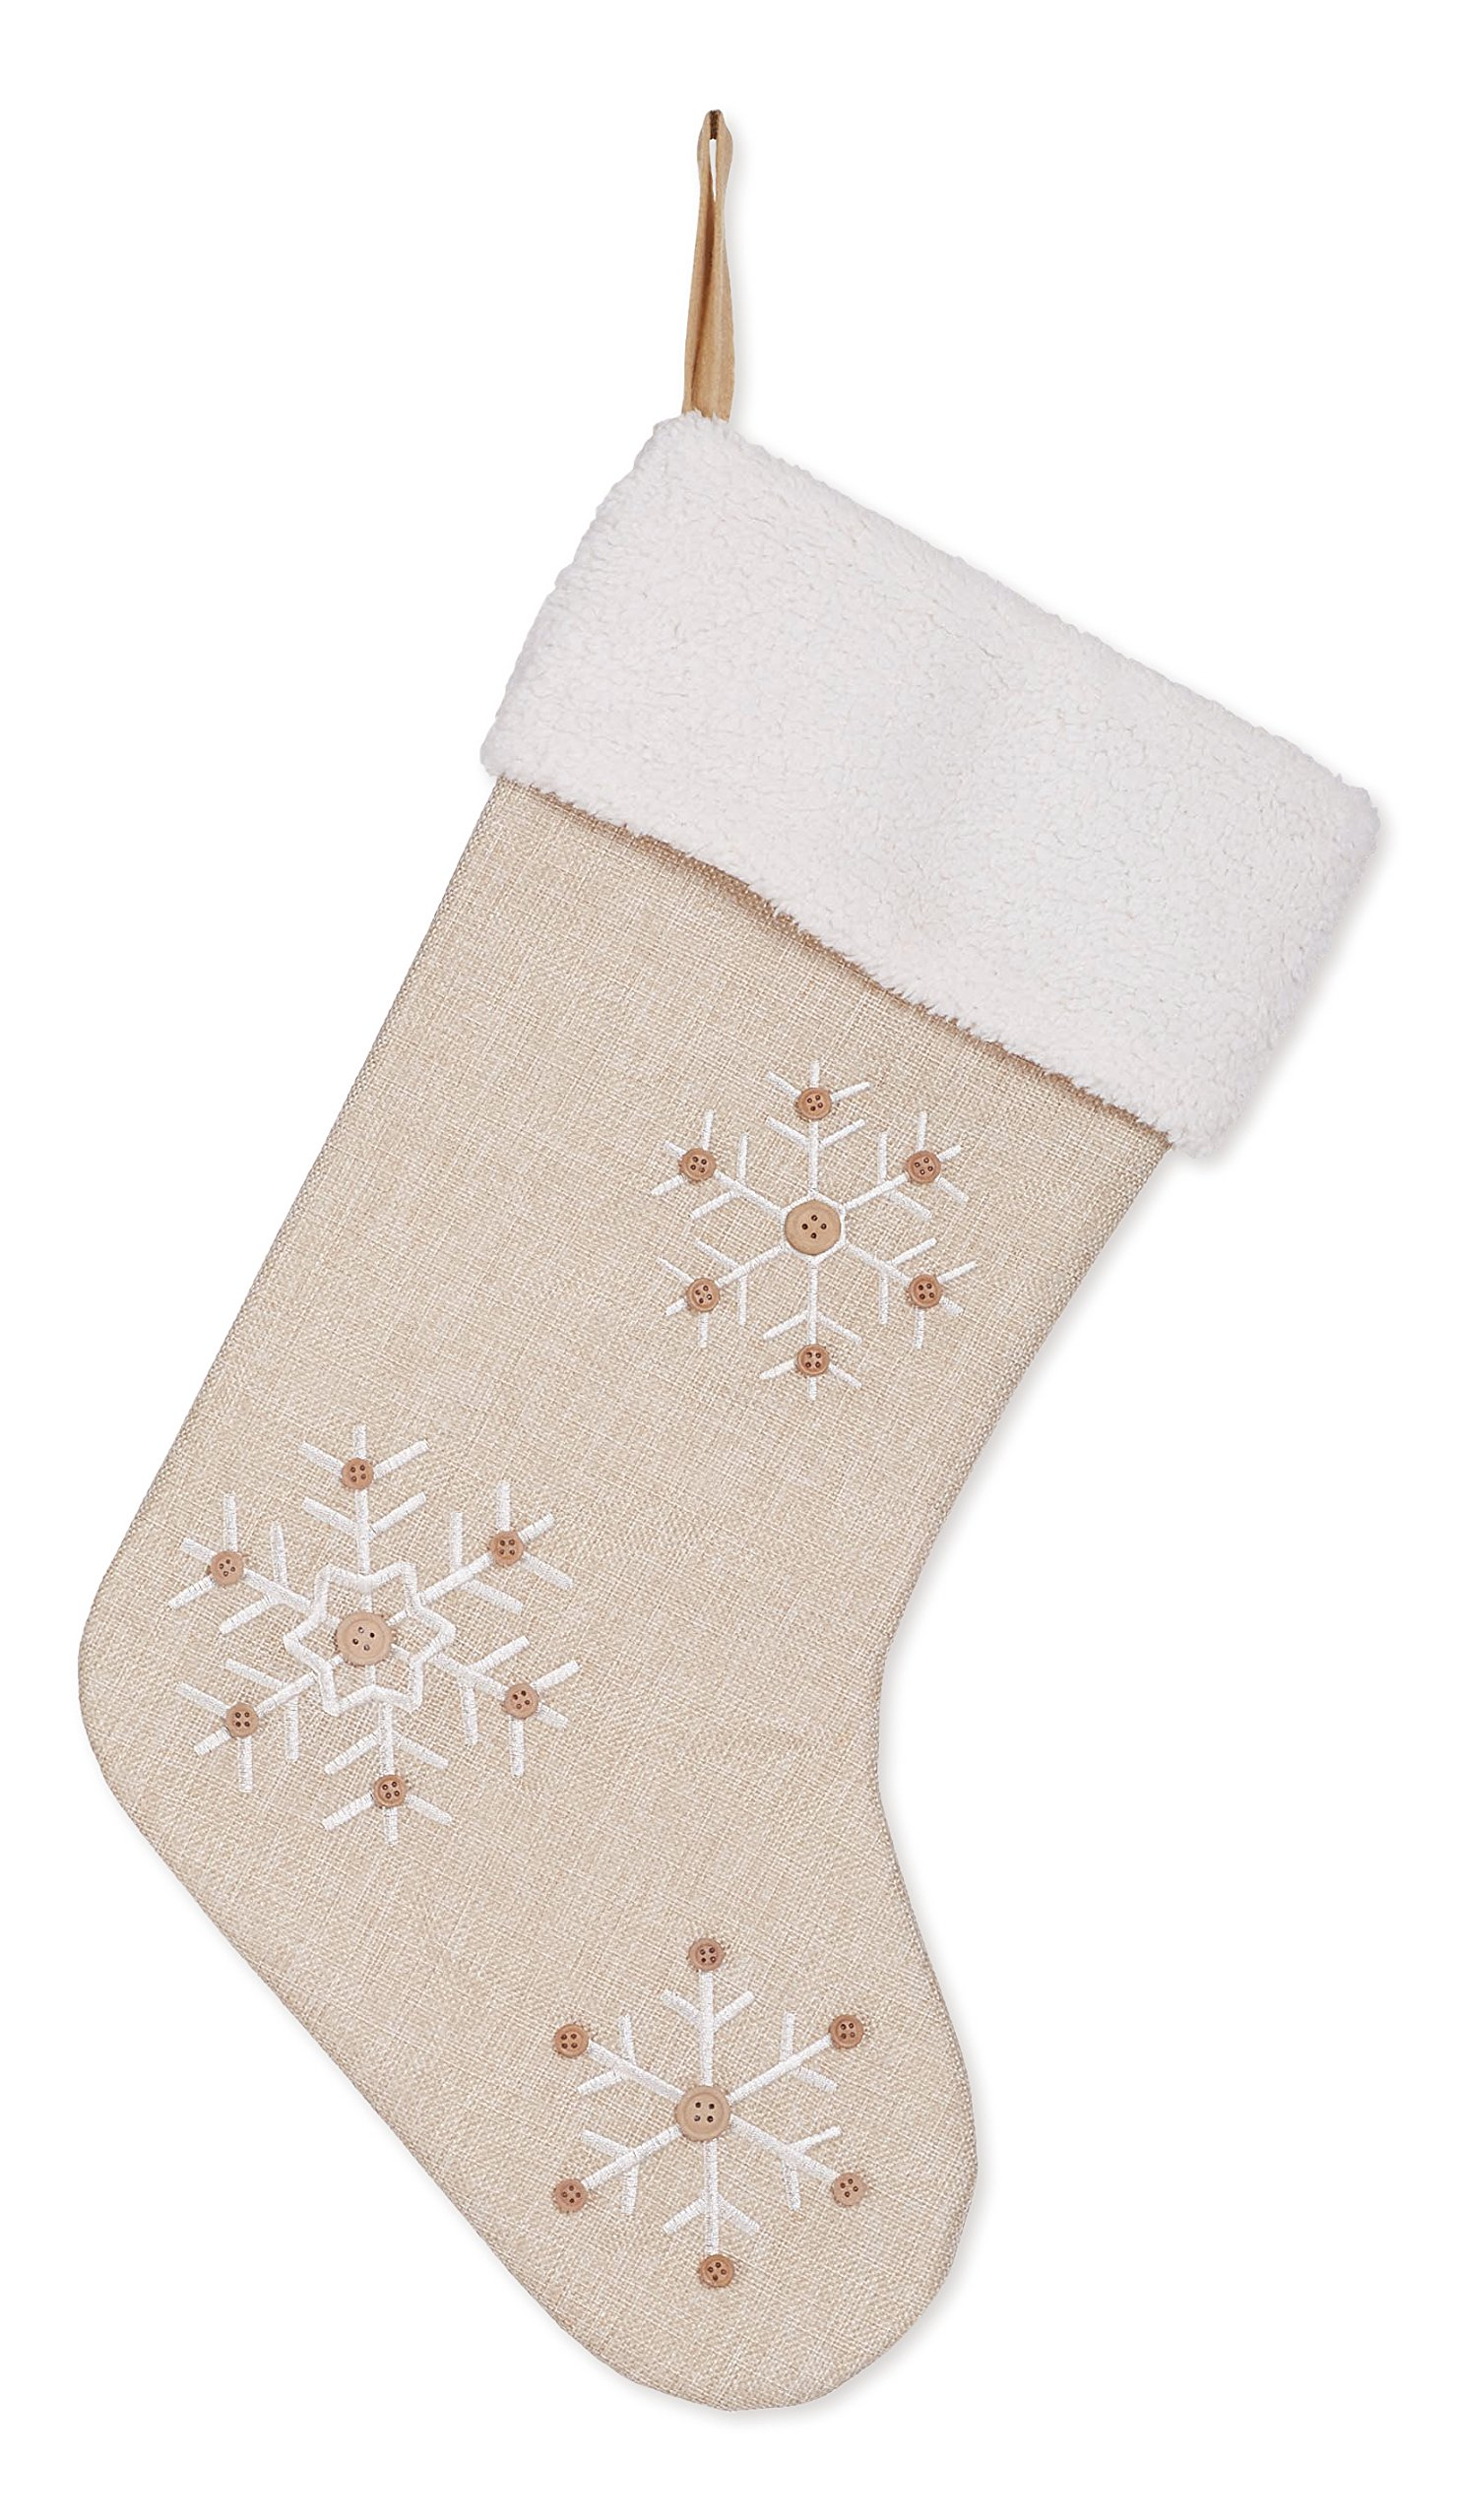 Snowflake 18.5 inch Burlap Christmas Stocking with Sherpa Cuff Decoration